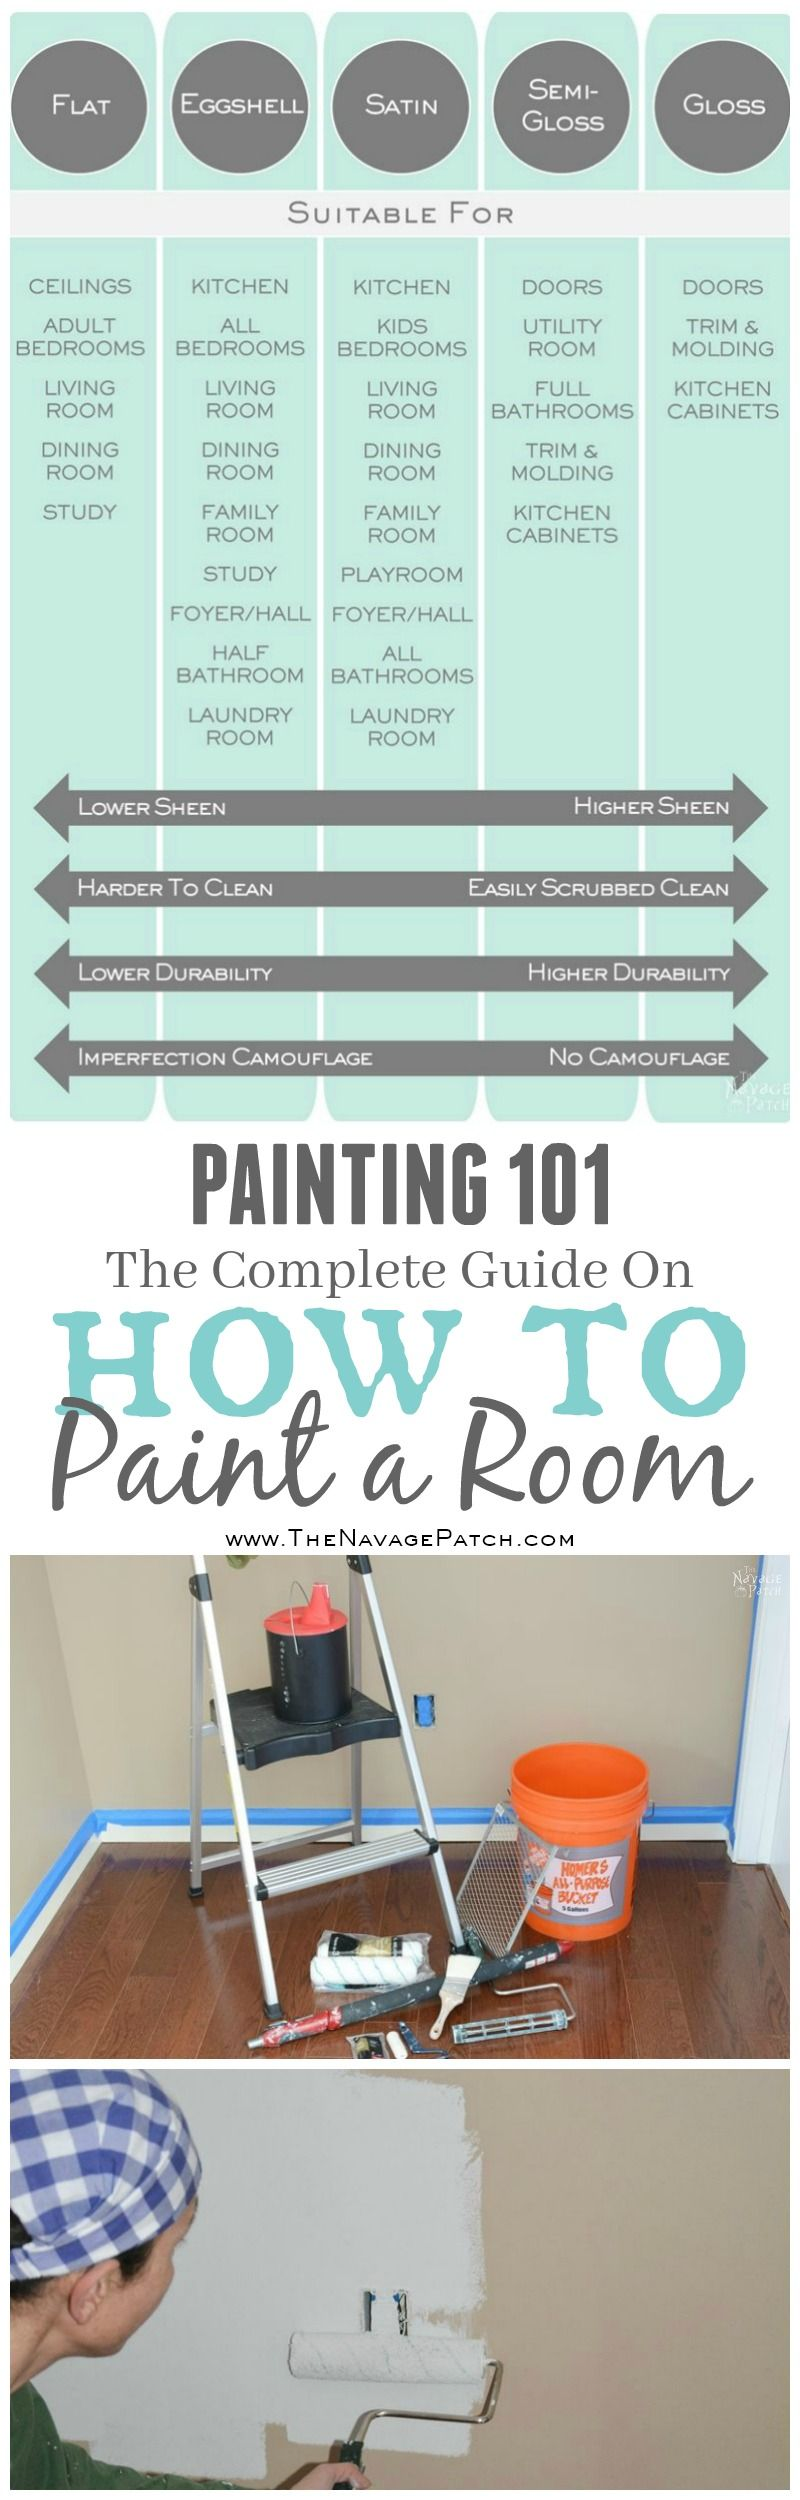 Painting 101 | How to paint a room | Tips on painting interior walls | Step-by-step painting tutorial | How to prep for wall painting | How to choose a paint sheen | How to store paint | Painting techniques | Painting Tools | How to choose paint color | TheNavagePatch.com